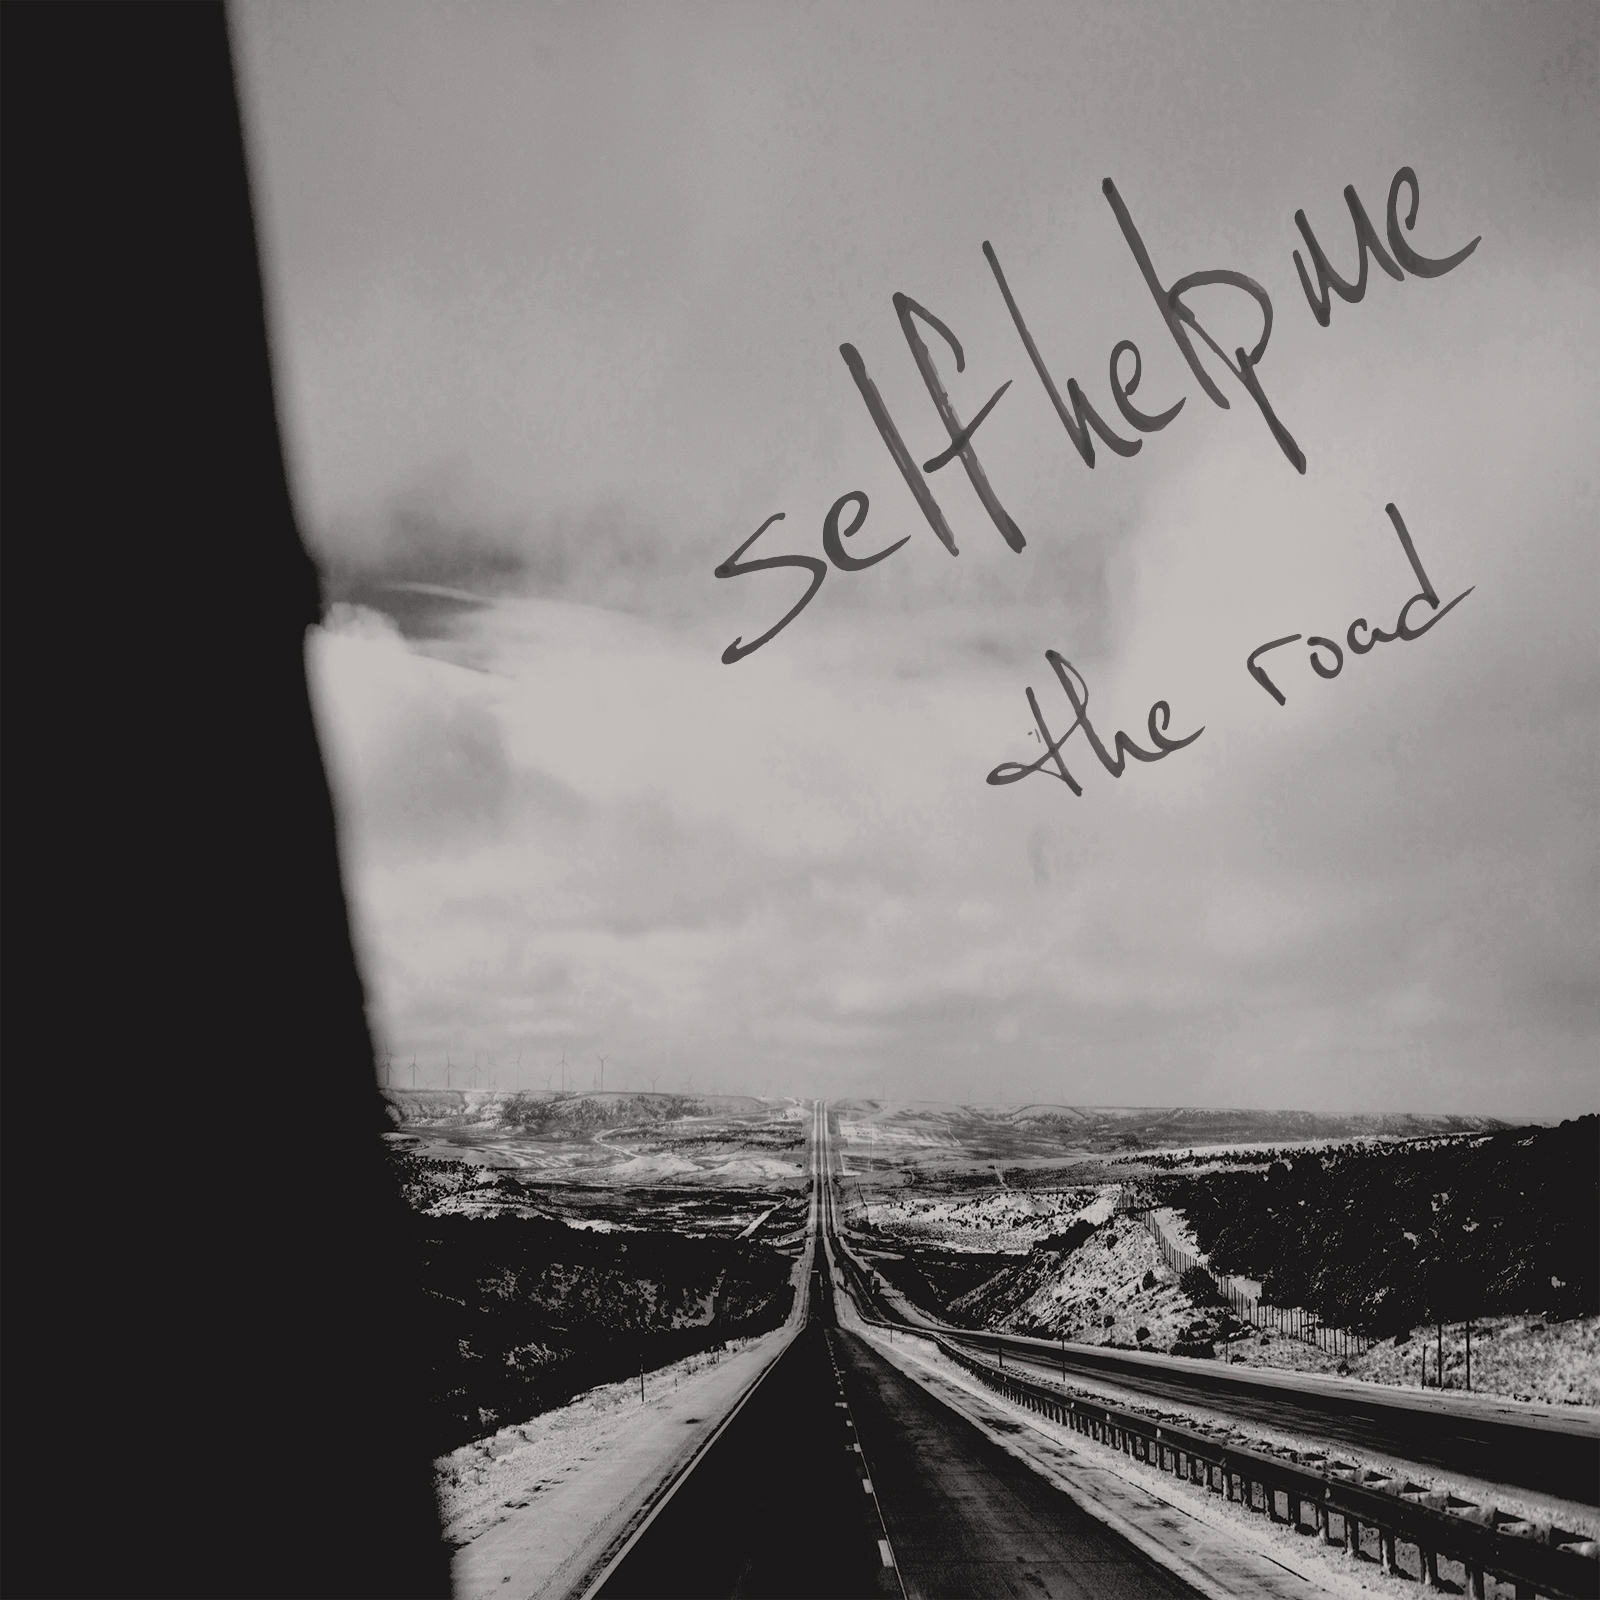 Selfhelpme - The Road